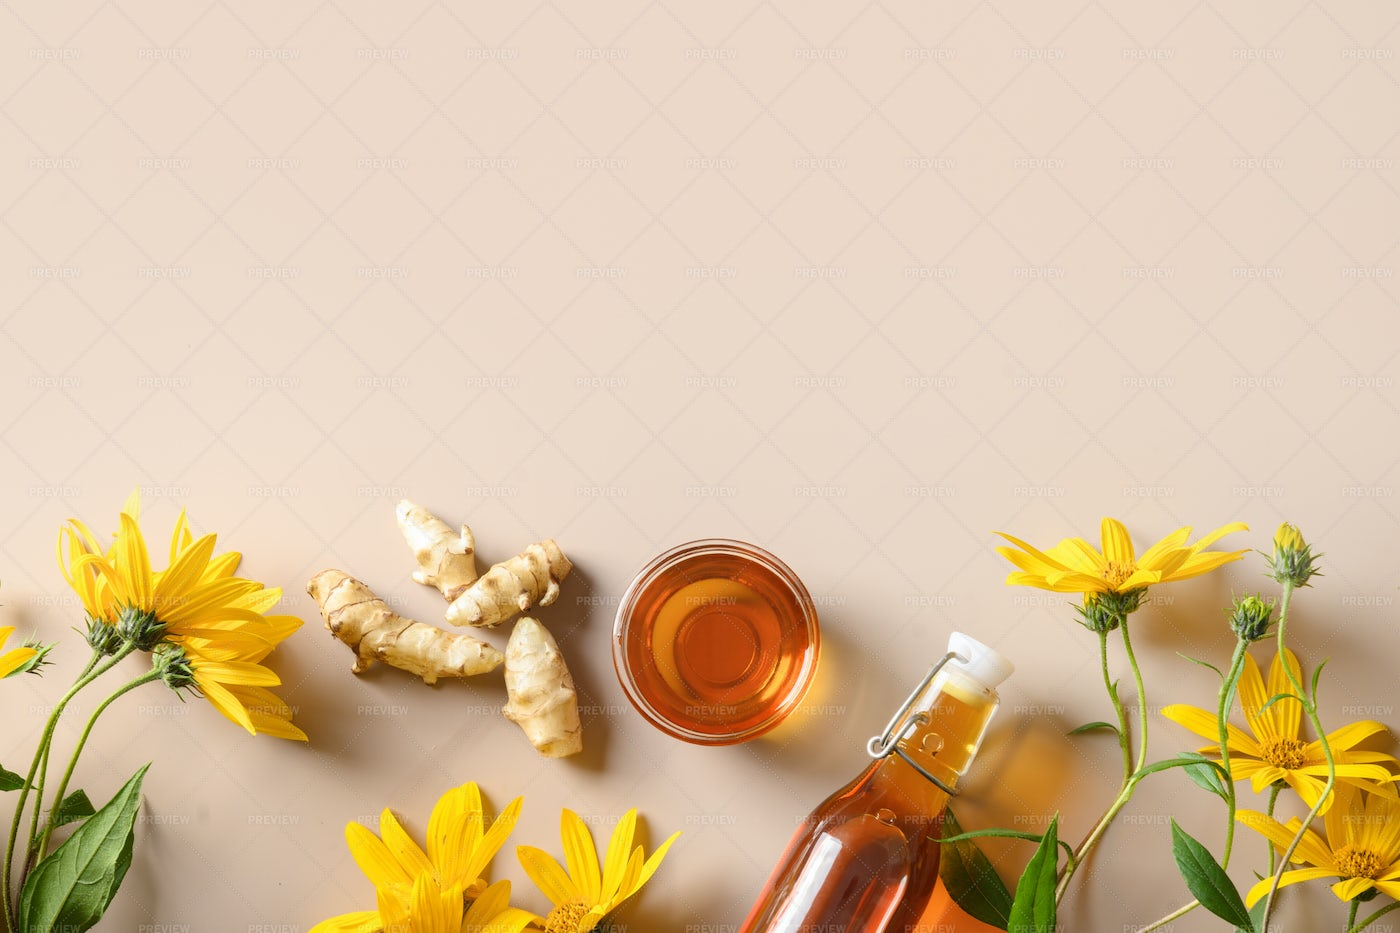 Topinambour Syrup , Roots, Flowers: Stock Photos